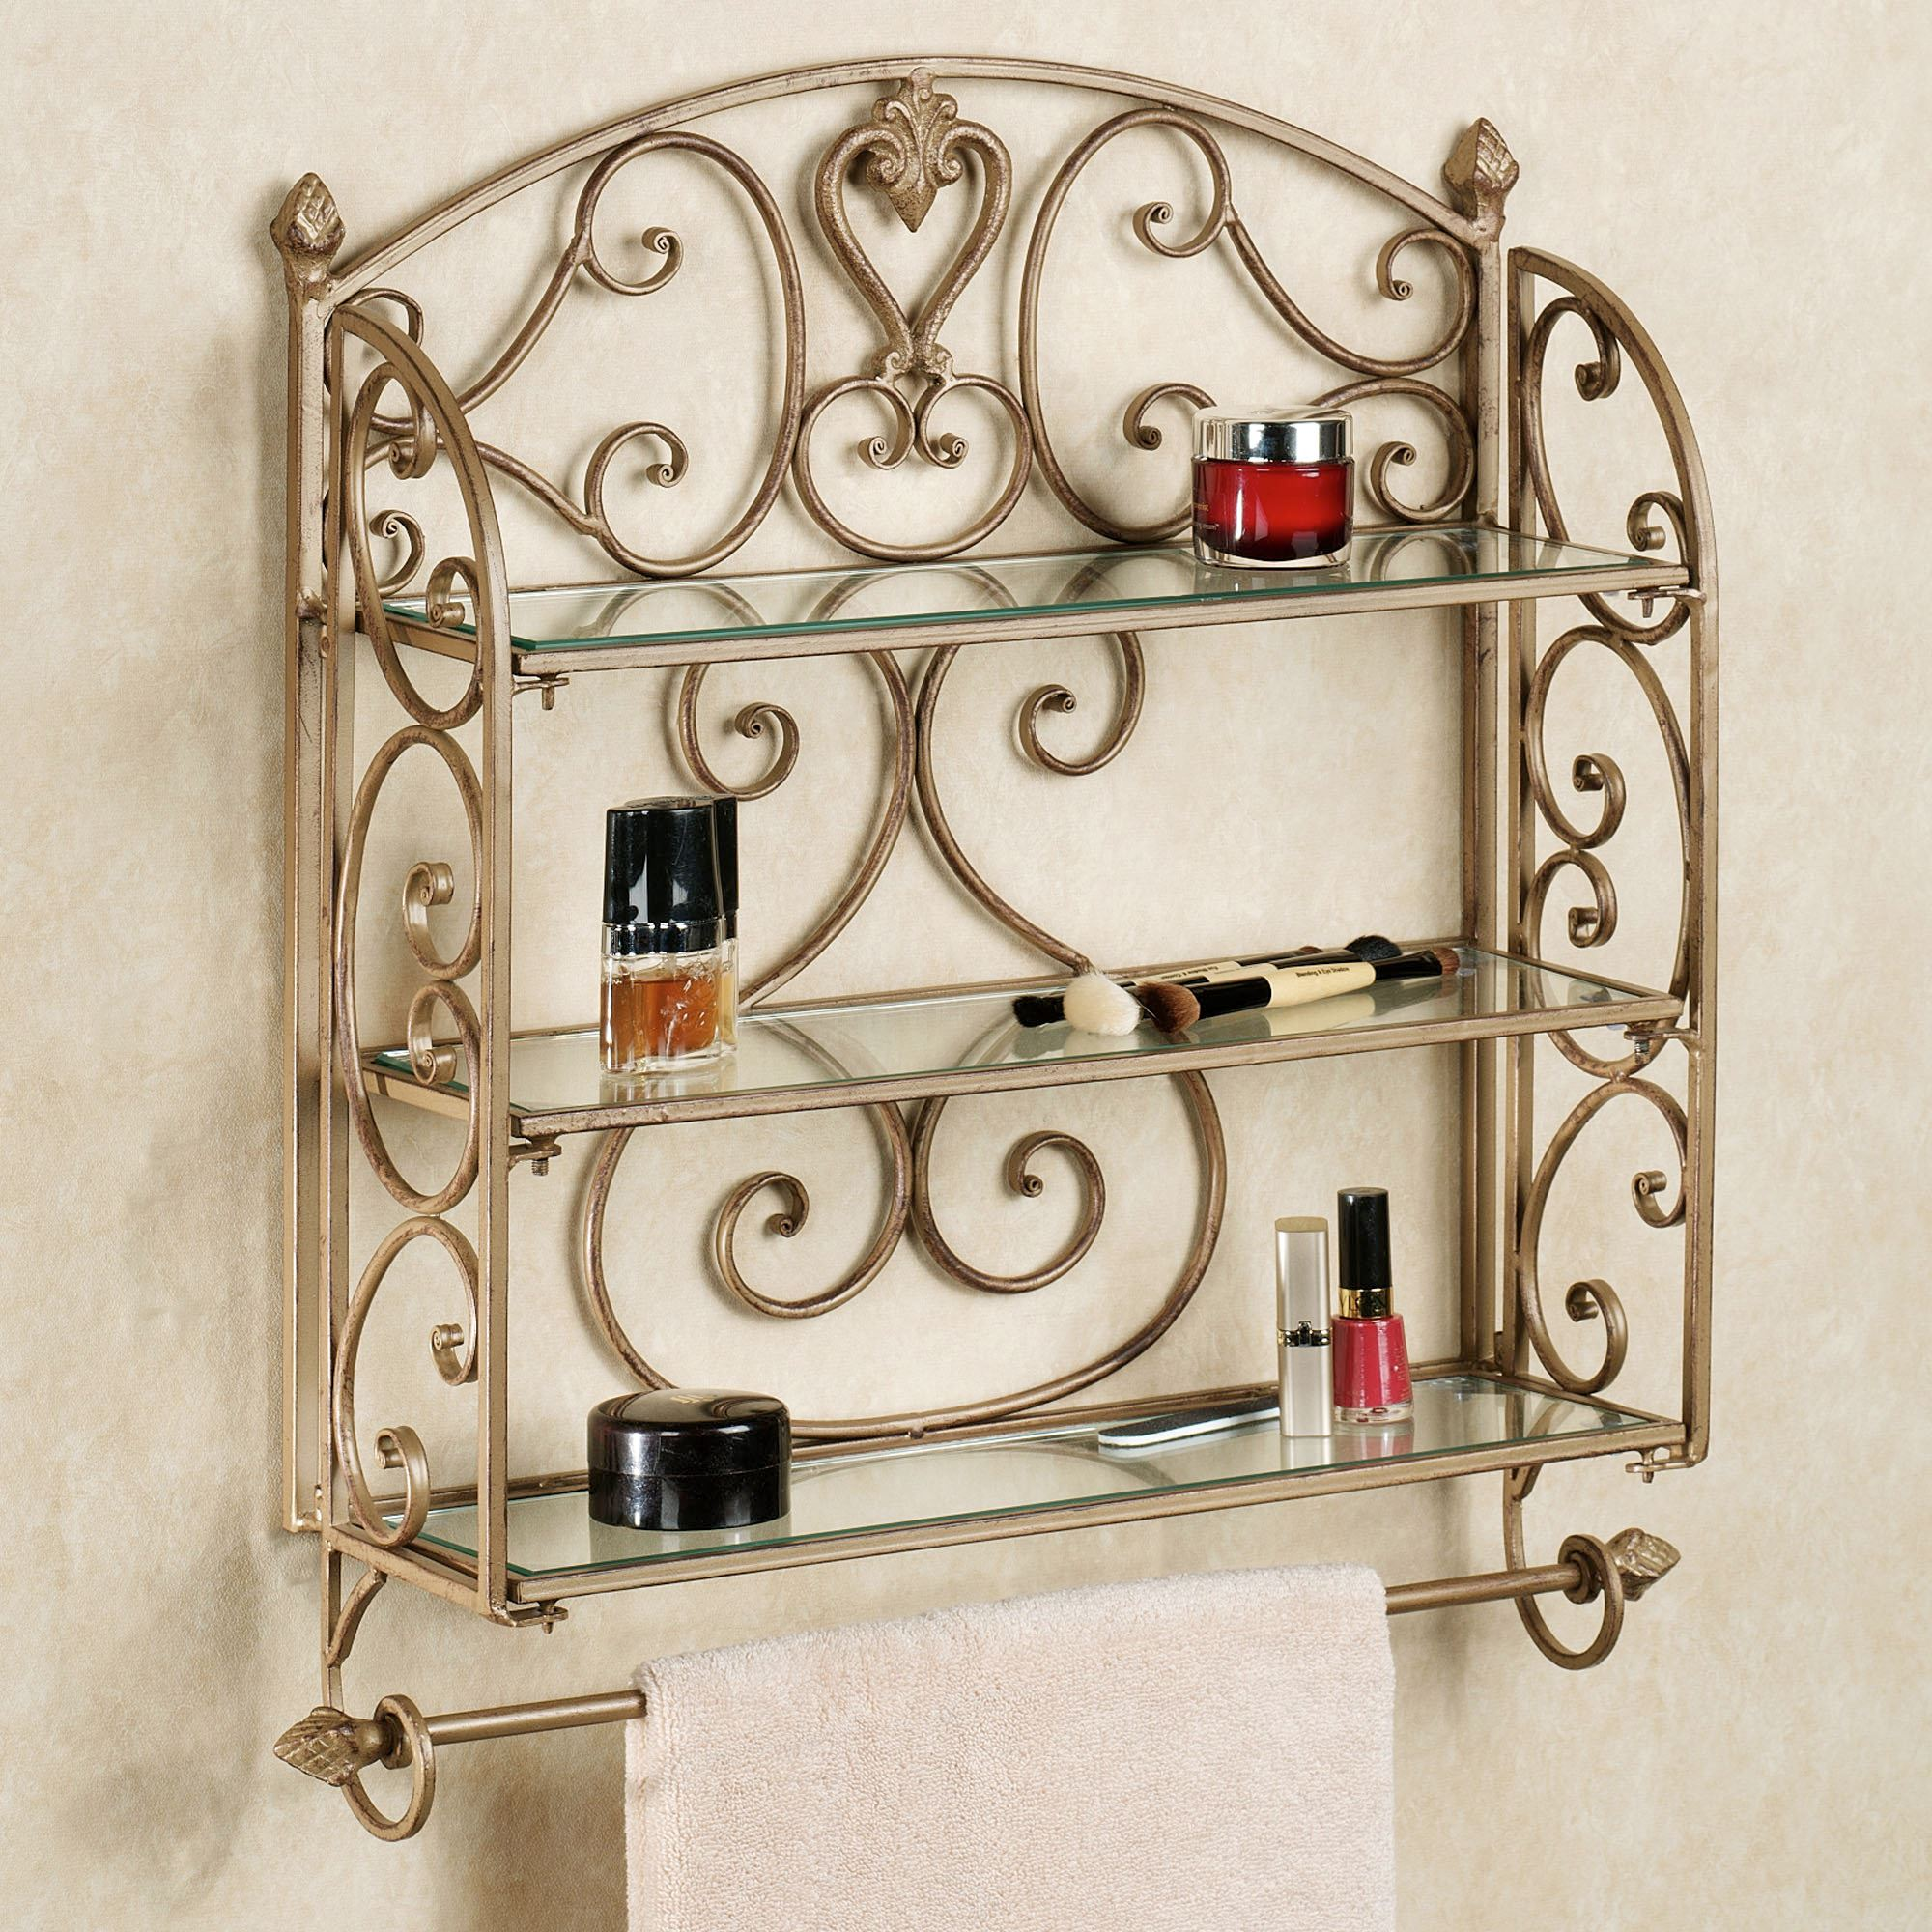 Aldabella Satin Gold Wall Shelf Towel Bar